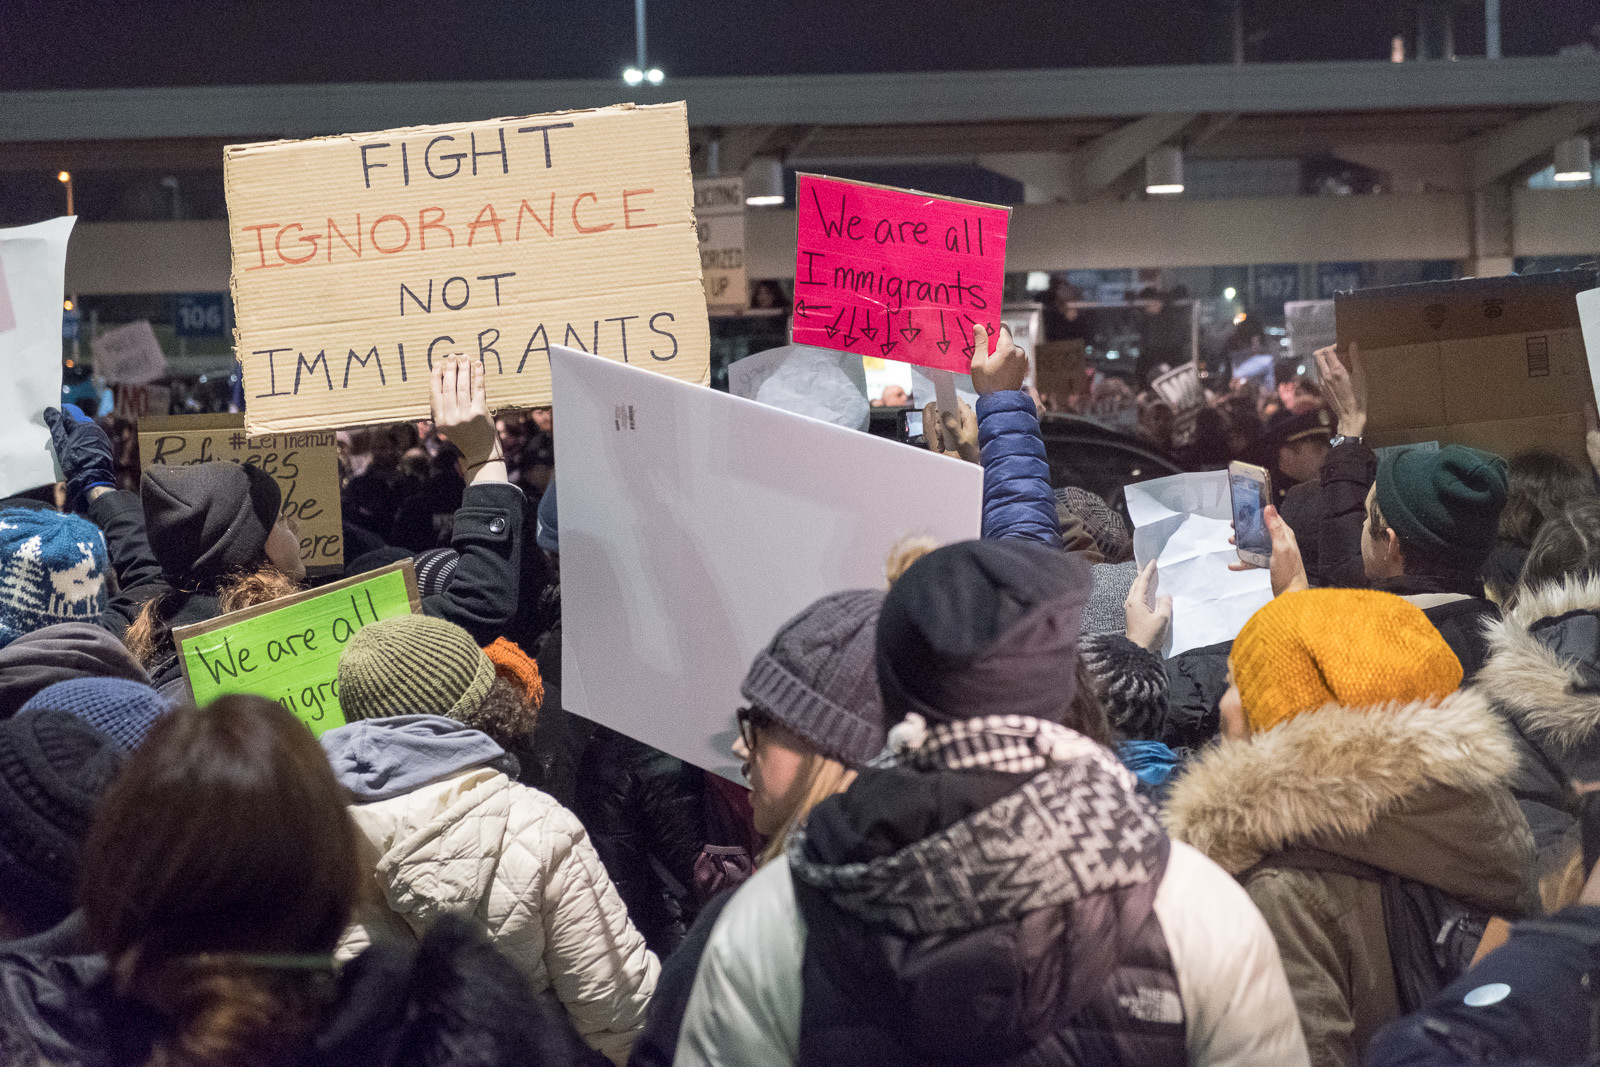 Protesters Saturday night at John F. Kennedy Airport in New York City welcome immigrants following the Executive Order by the Trump Administration. Photo courtesy of  Luminary Traveler  of the Flickr Creative Commons.